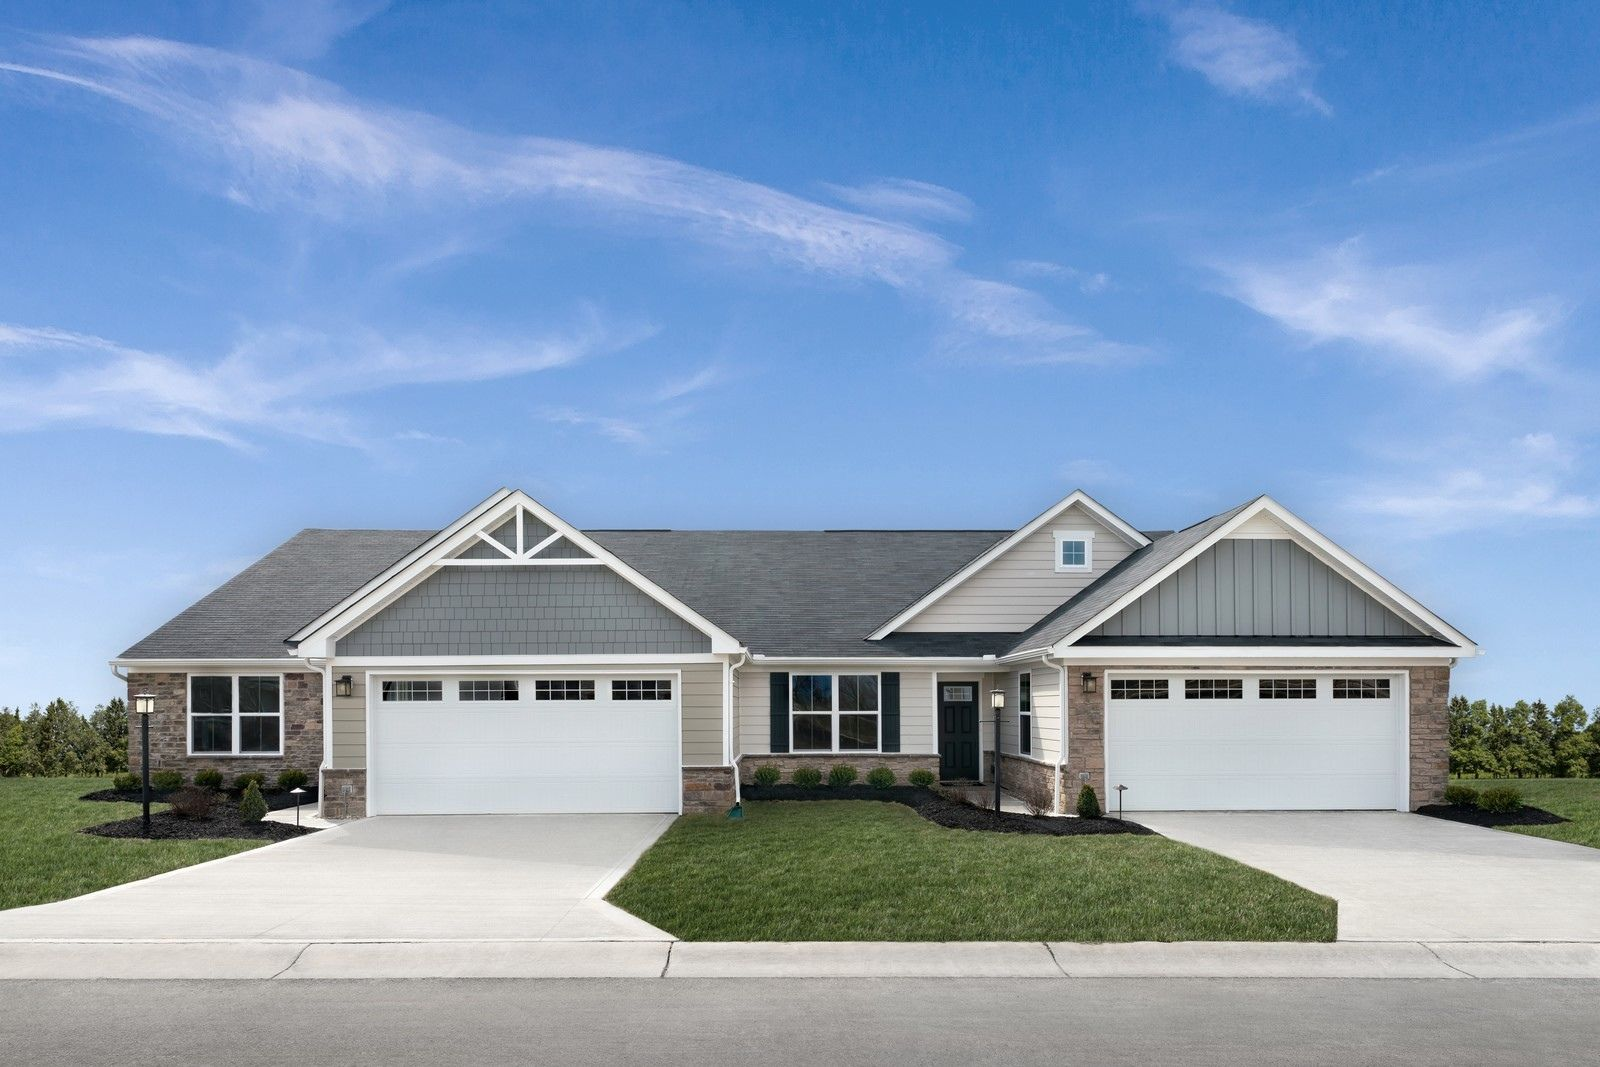 Welcome home to Turning Stone:Small-town charm, big-city convenience—ranches on tree-lined homesites, lawn care/snow removal included, close to downtown Canal Winchester—mid $200s.Click here to schedule your visit today!